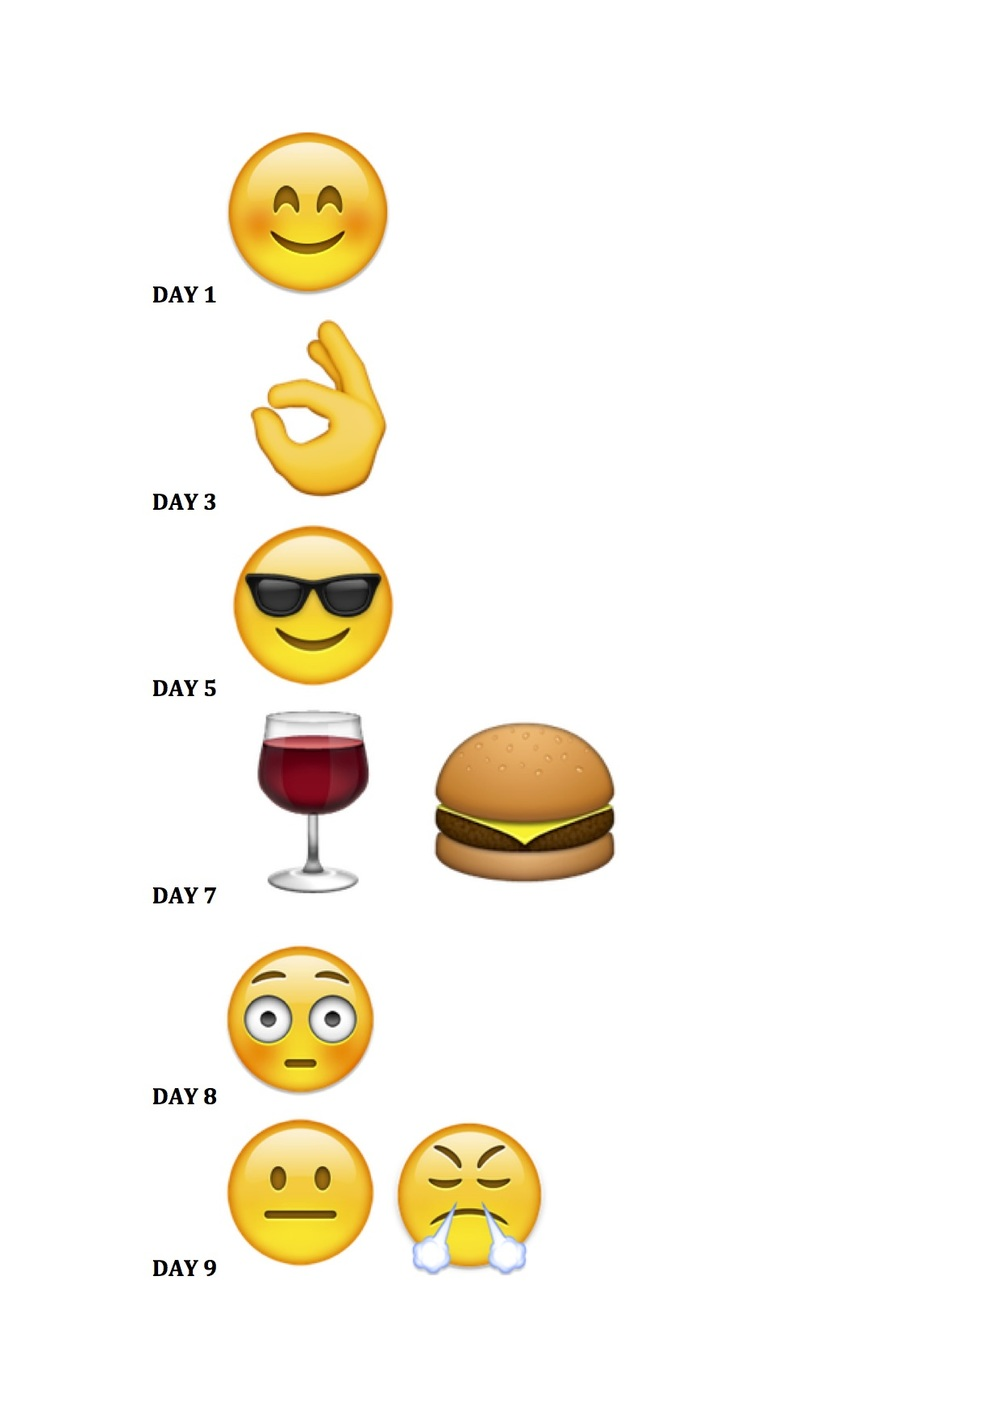 habit change by emojis1.jpg